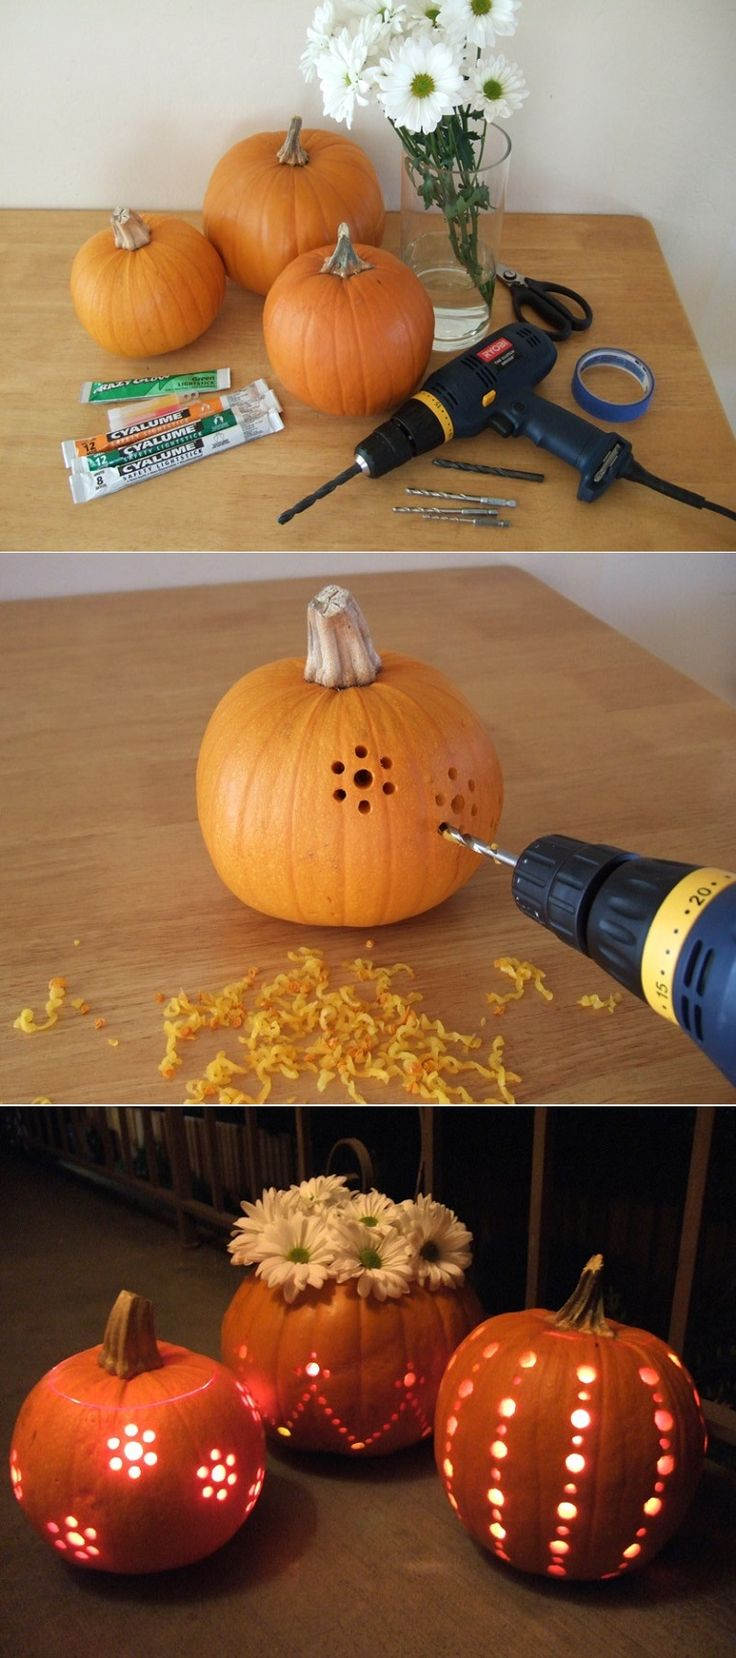 15 Fall Pumpkin Decorating Ideas - GleamItUp